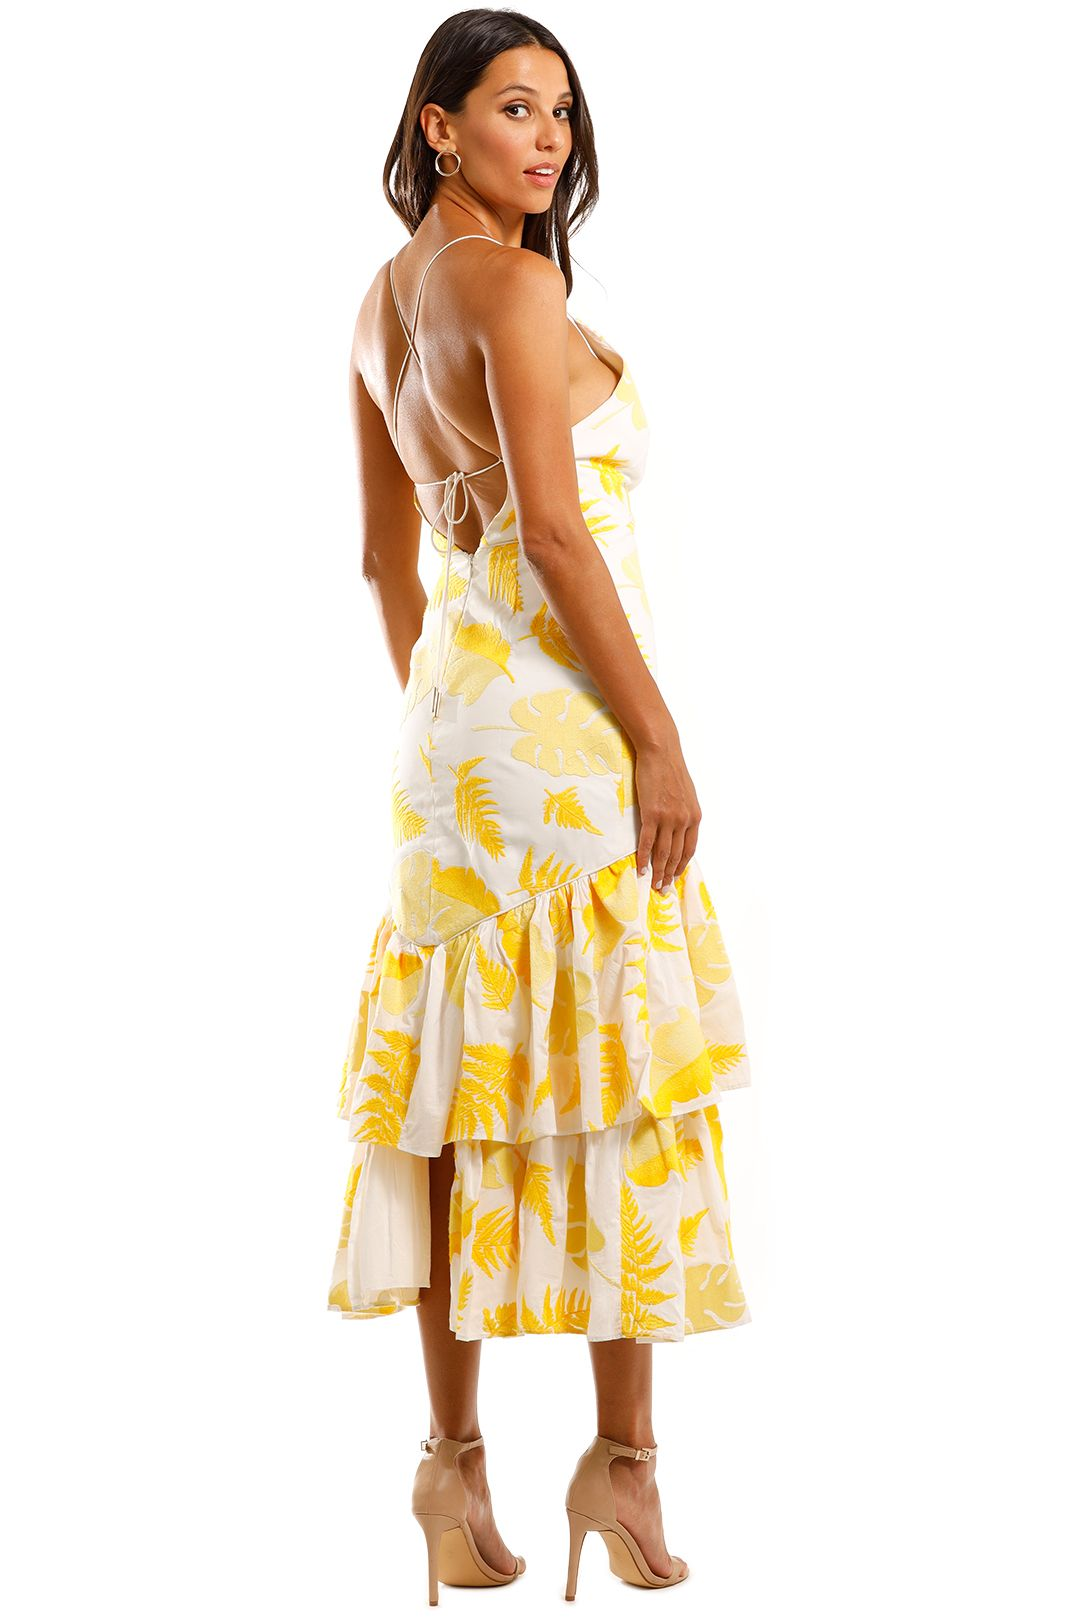 Acler Wray Dress Fit and Flare Backless